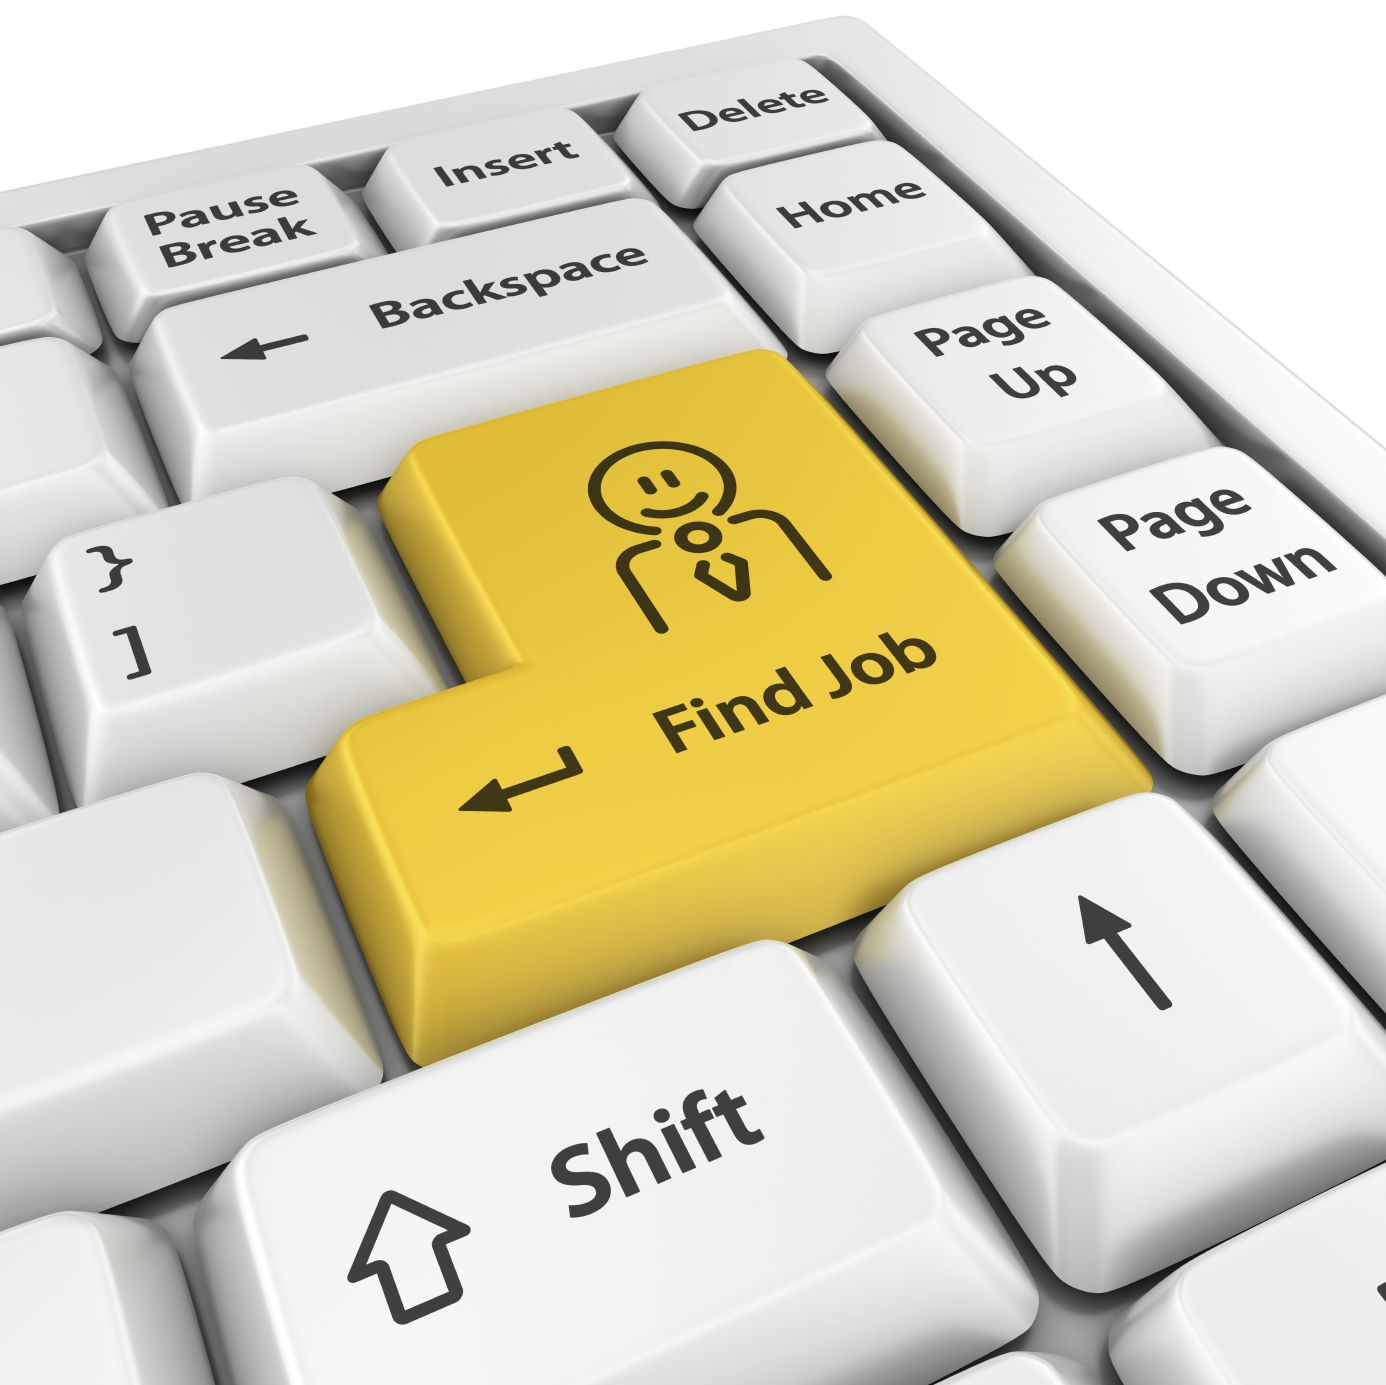 Don T Waste Your Time In Crappy Startup Jobs Http Michaelochurch Wordpress Com 2012 07 08 Dont Wa Data Entry Jobs Work Online Jobs Online Data Entry Jobs